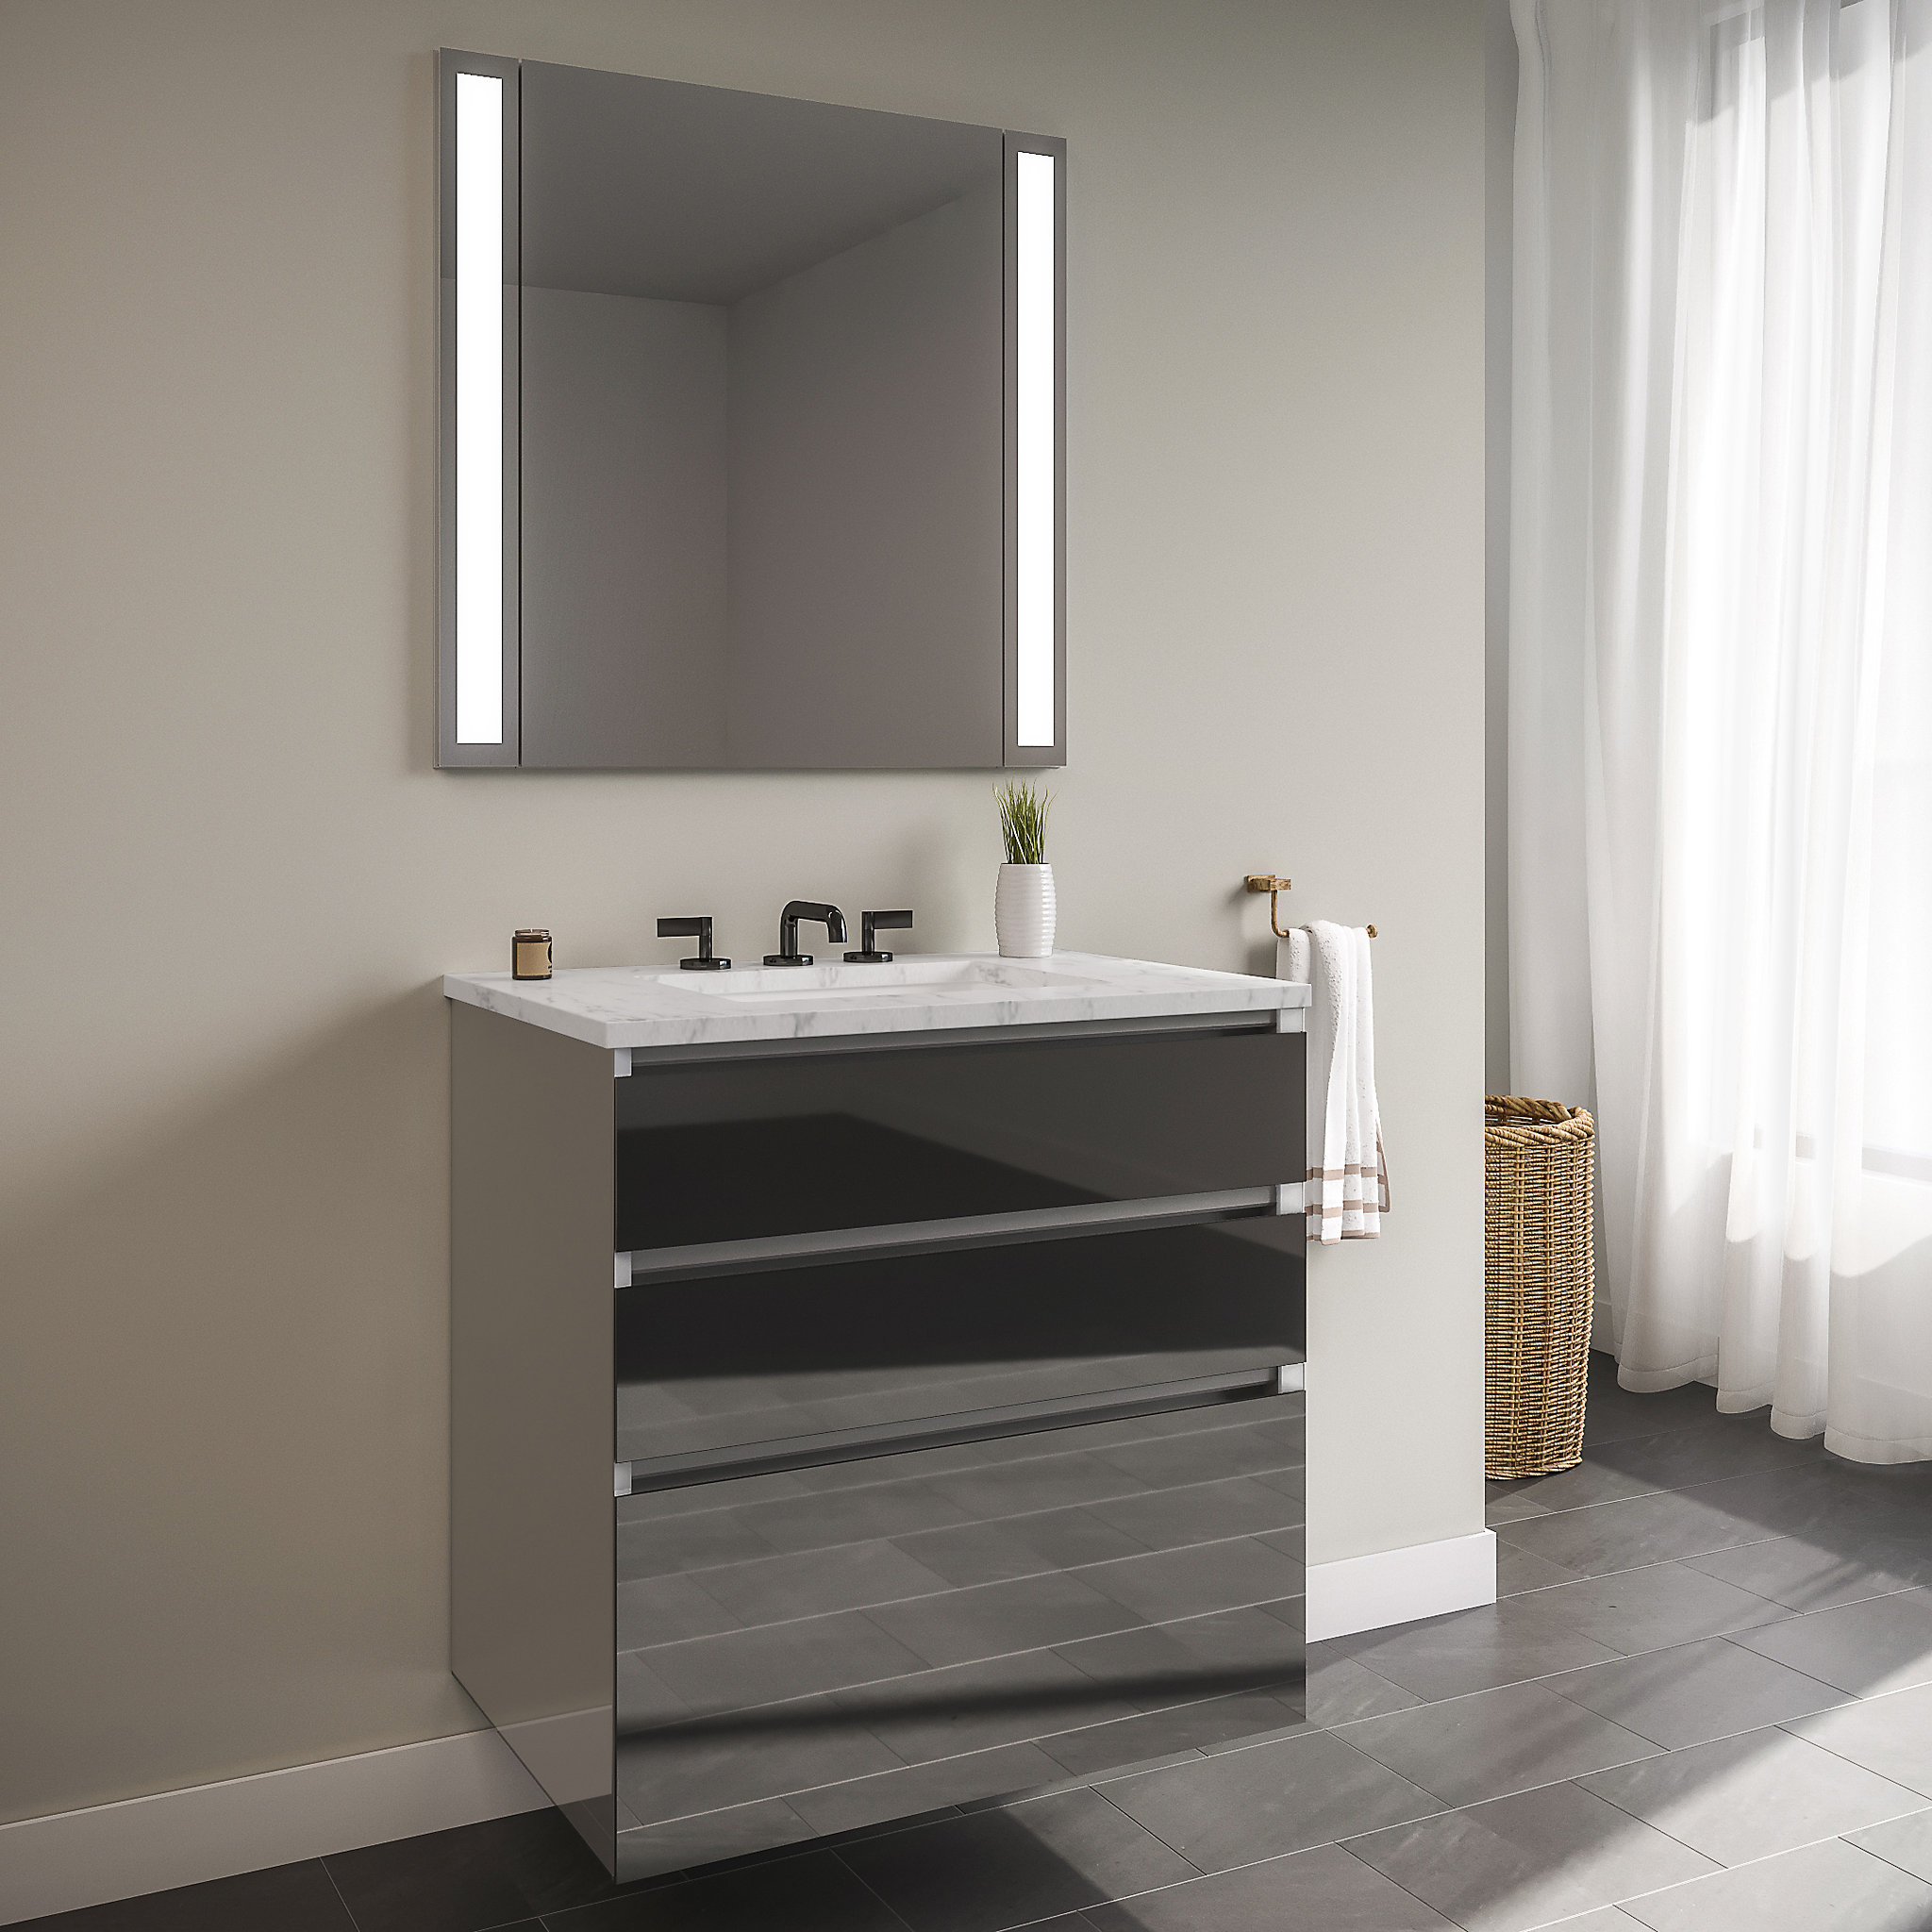 "Robern 24119400NB00003 Curated Cartesian Vanity, 24"" x 7-1/2"" x 21"", 24"" x 15"" x 21"", Three Drawer, Tinted Gray Mirror Glass, Ti"